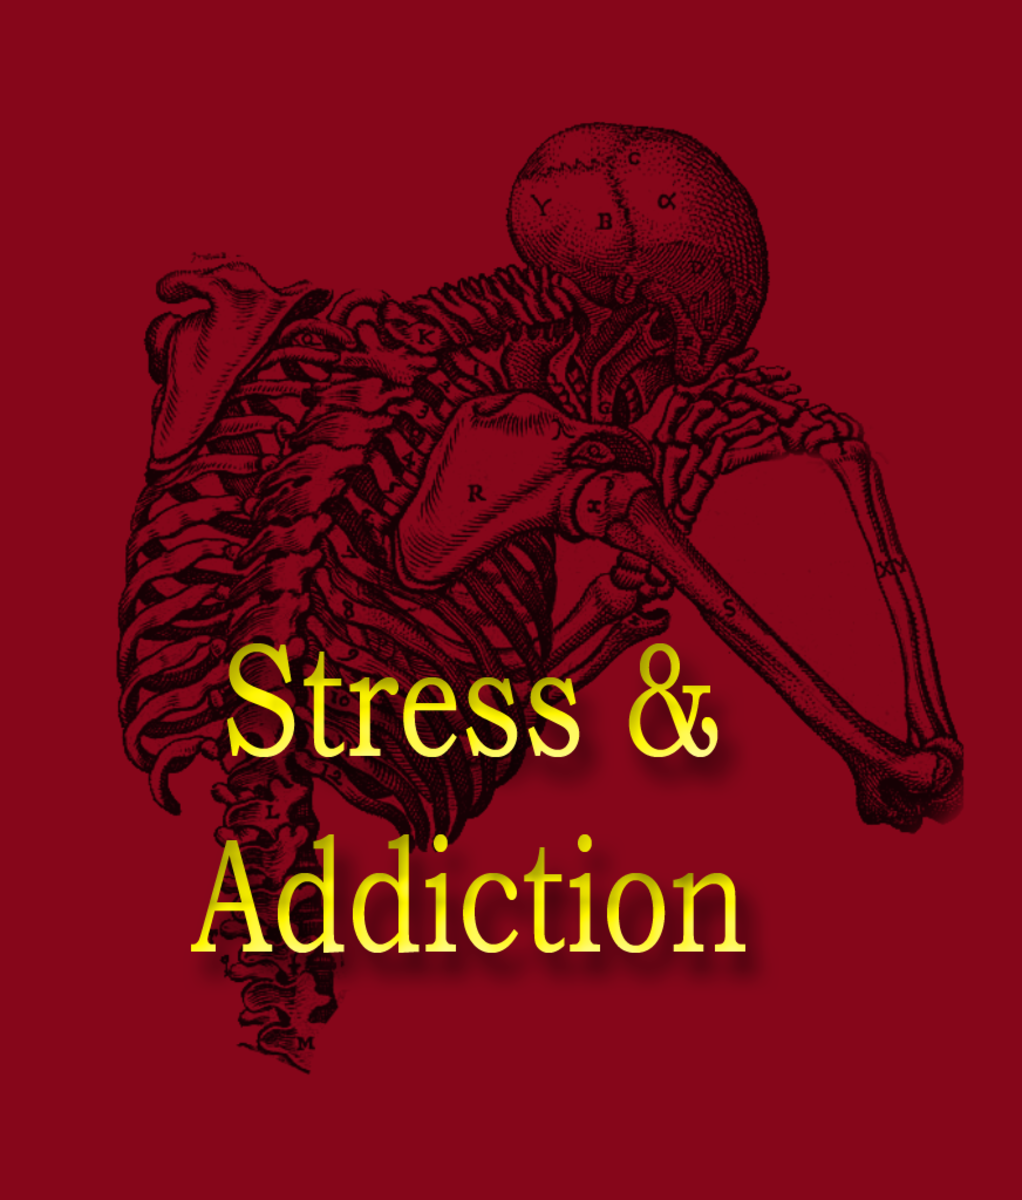 Anger and Addictions as a Result of Stress